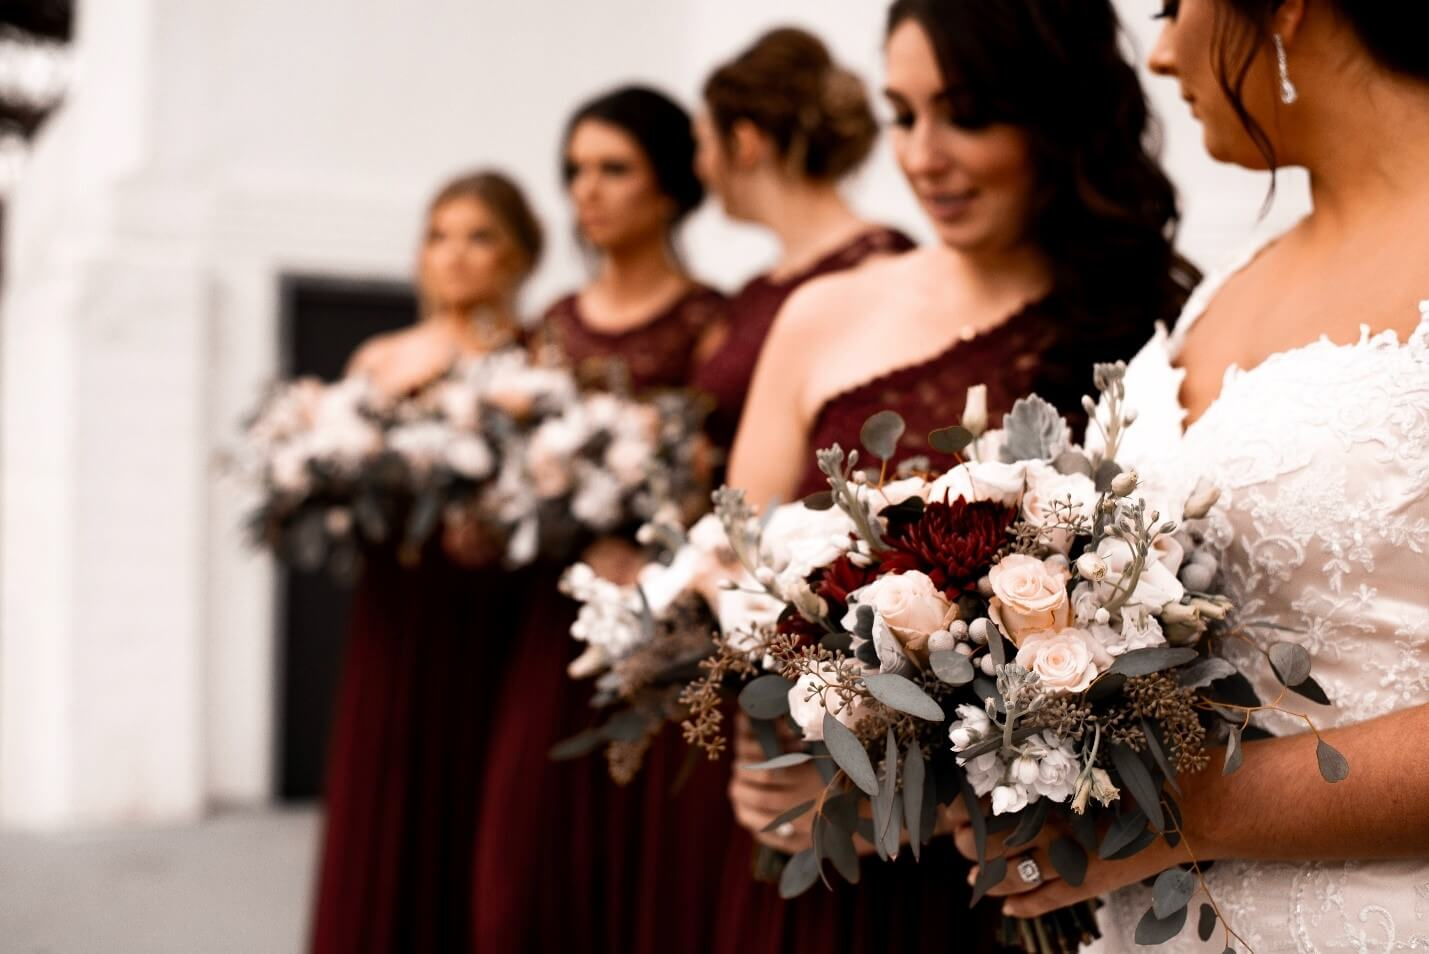 Bridesmaids dressed up at the wedding, holding bouquets